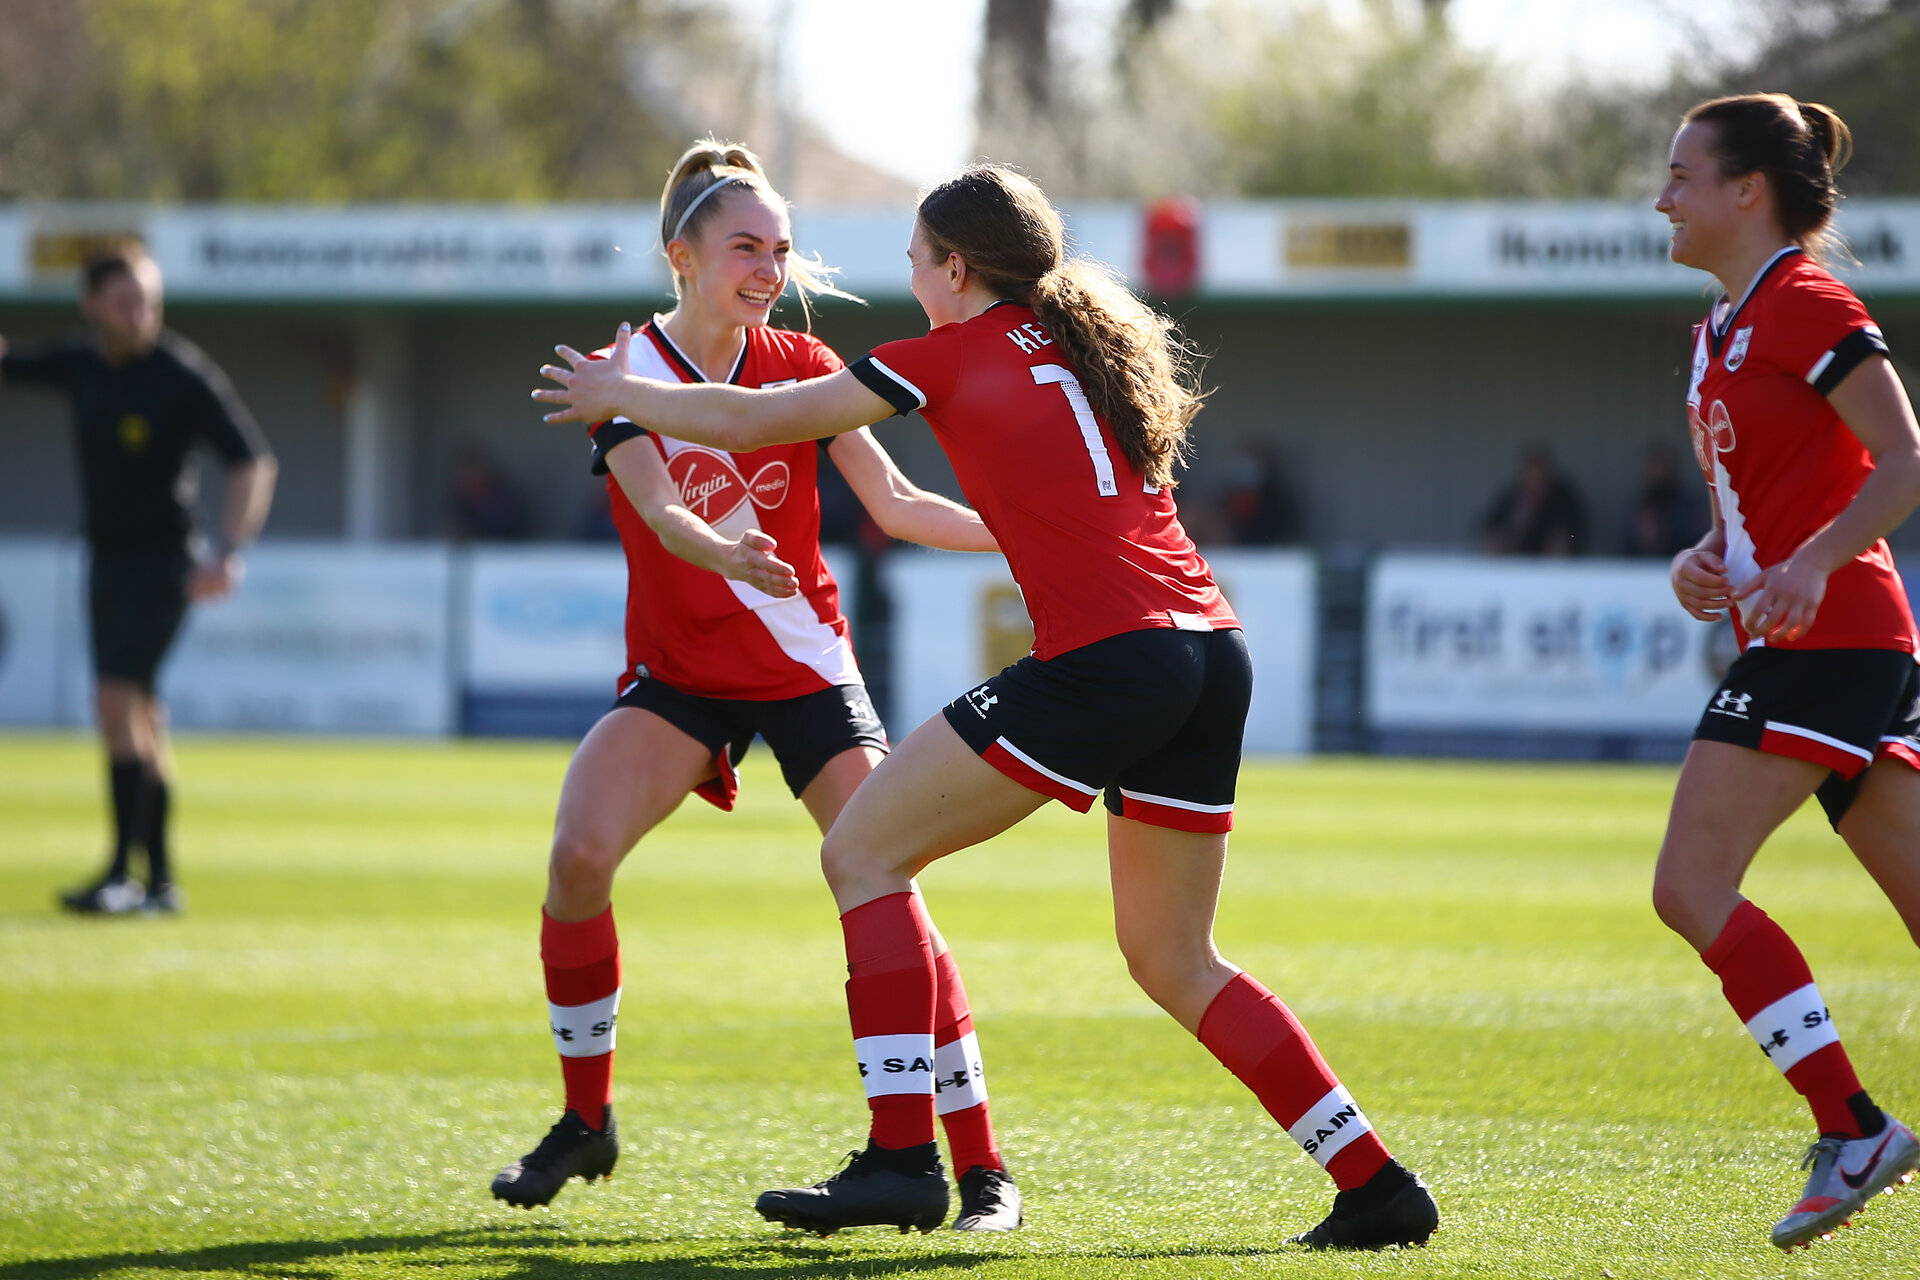 SOUTHAMPTON, ENGLAND - APRIL 04: during the Vitality Women's FA Cup second round match between Southampton Women and Plymouth Argyle Women at The Snows Stadium on April 04, 2021 in Southampton, England. (Photo by Isabelle Field/Southampton FC via Getty Images)